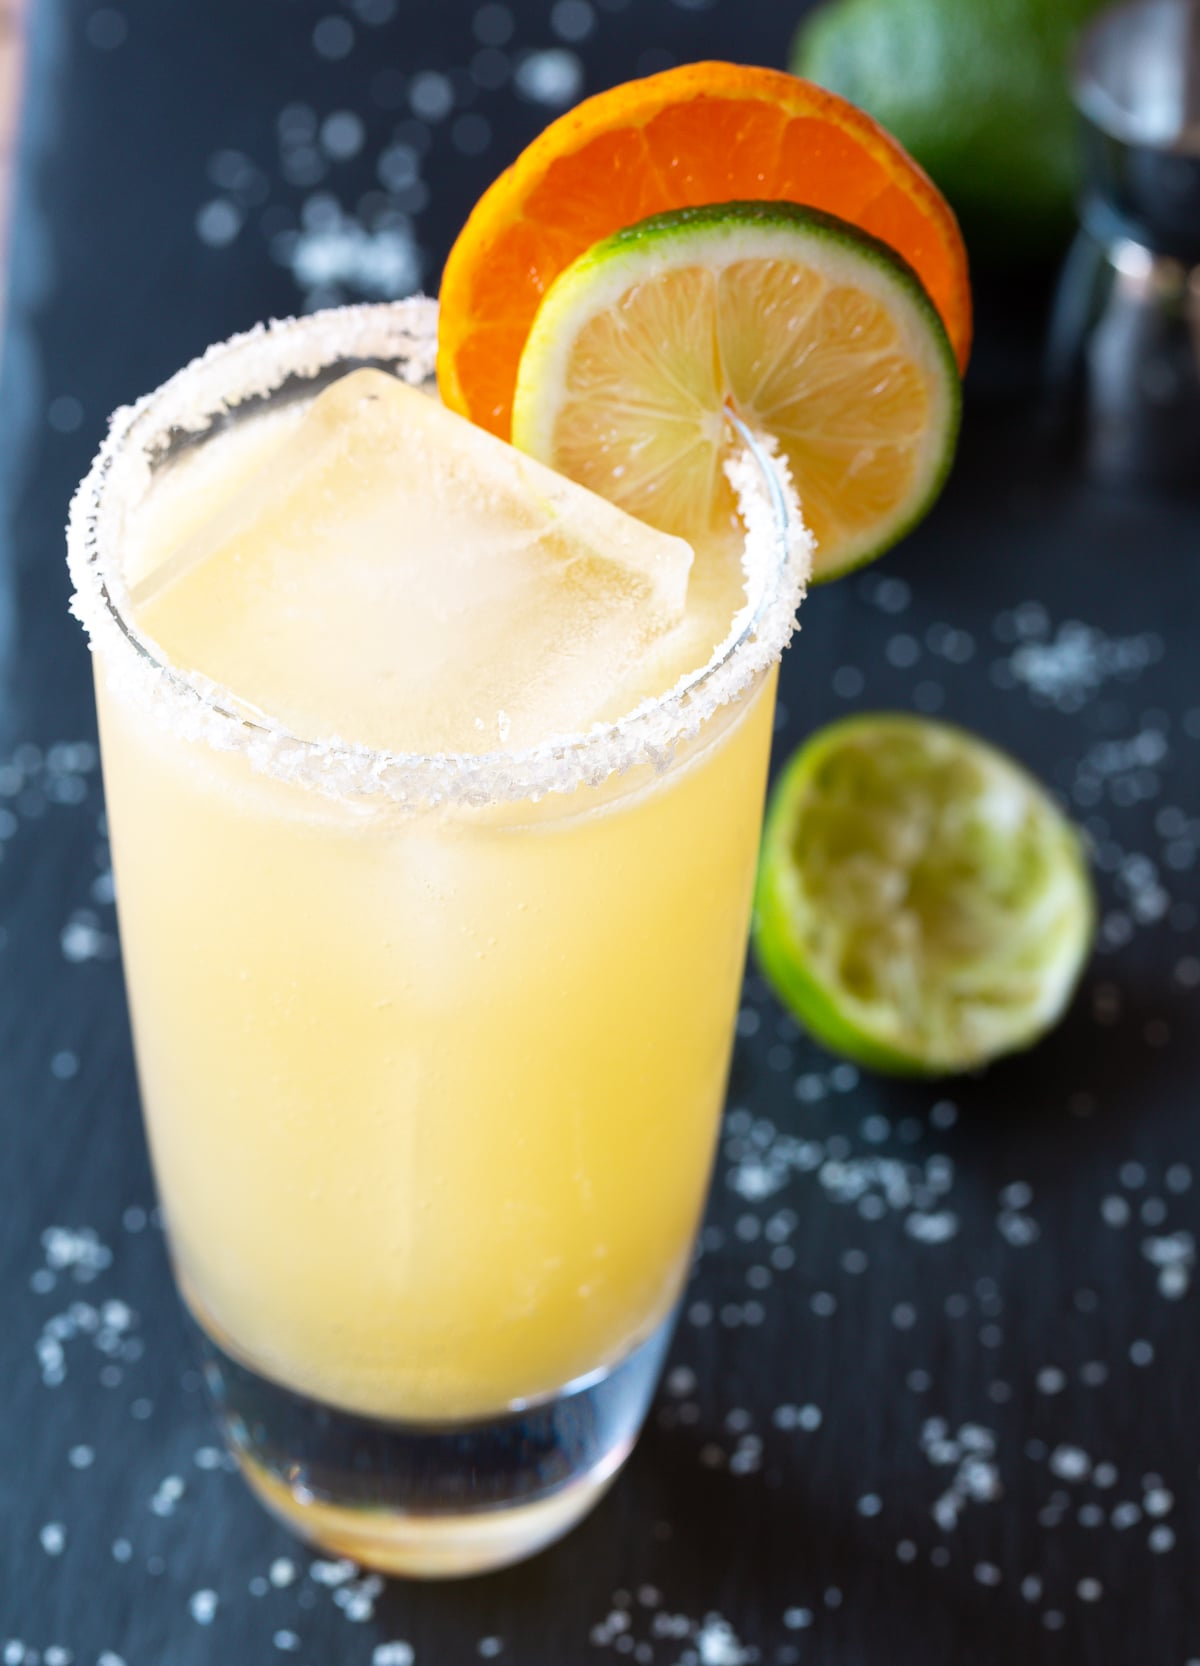 The Best Margarita Recipe! #CincodeMayo #Margaritas #margs #Mexican #Cocktails #tequila